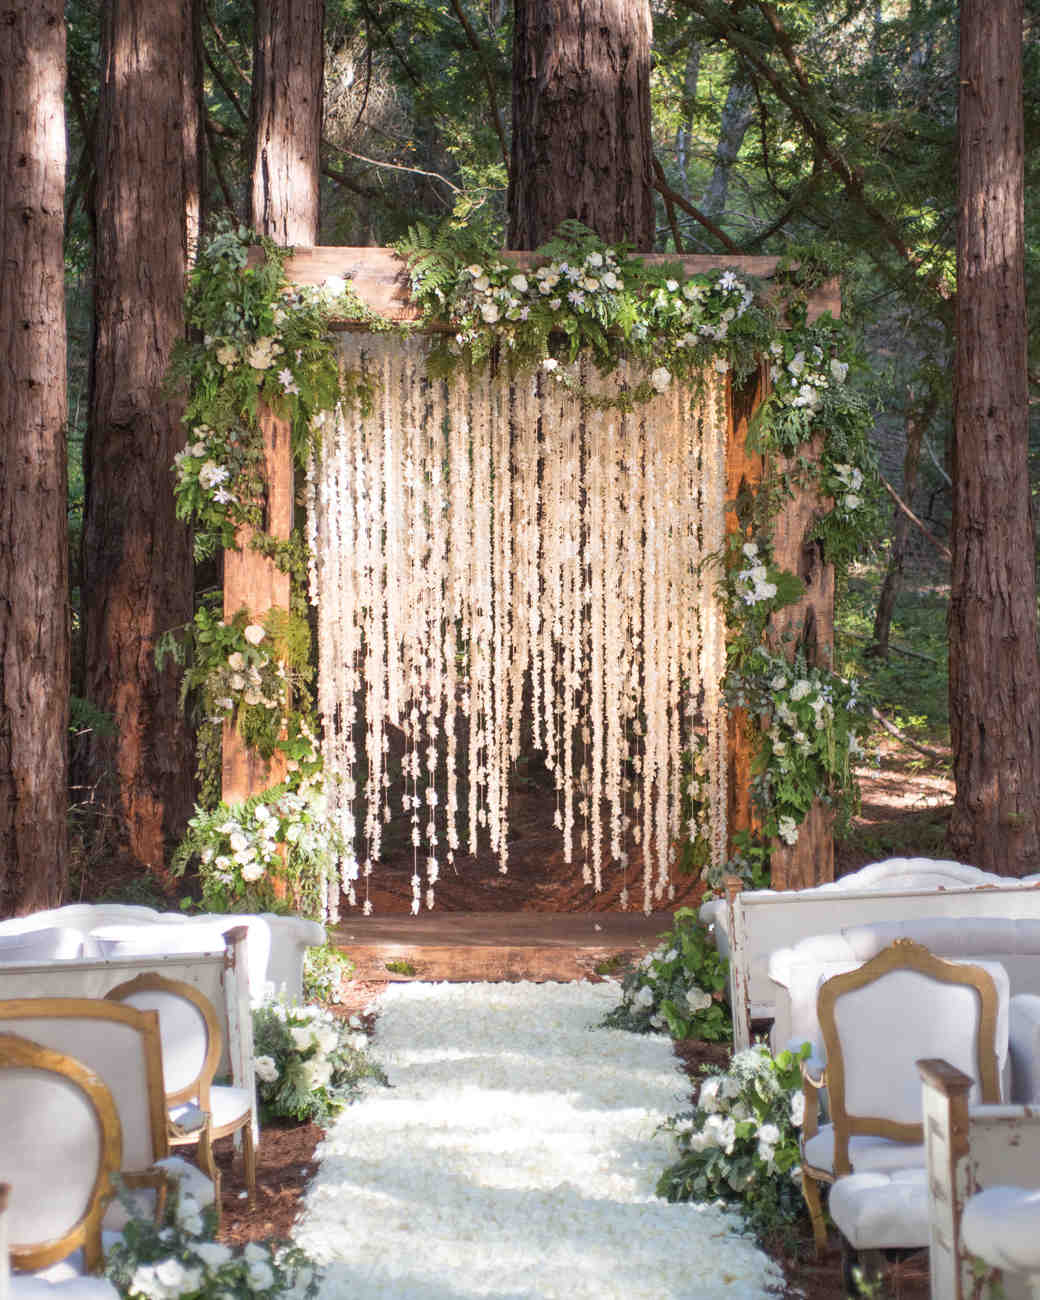 breelayne-hunter-wedding-california-ceremony-chuppah-arch-0060-santa-lucia-preserve-fairy-woodsy-organic-s112849.jpg